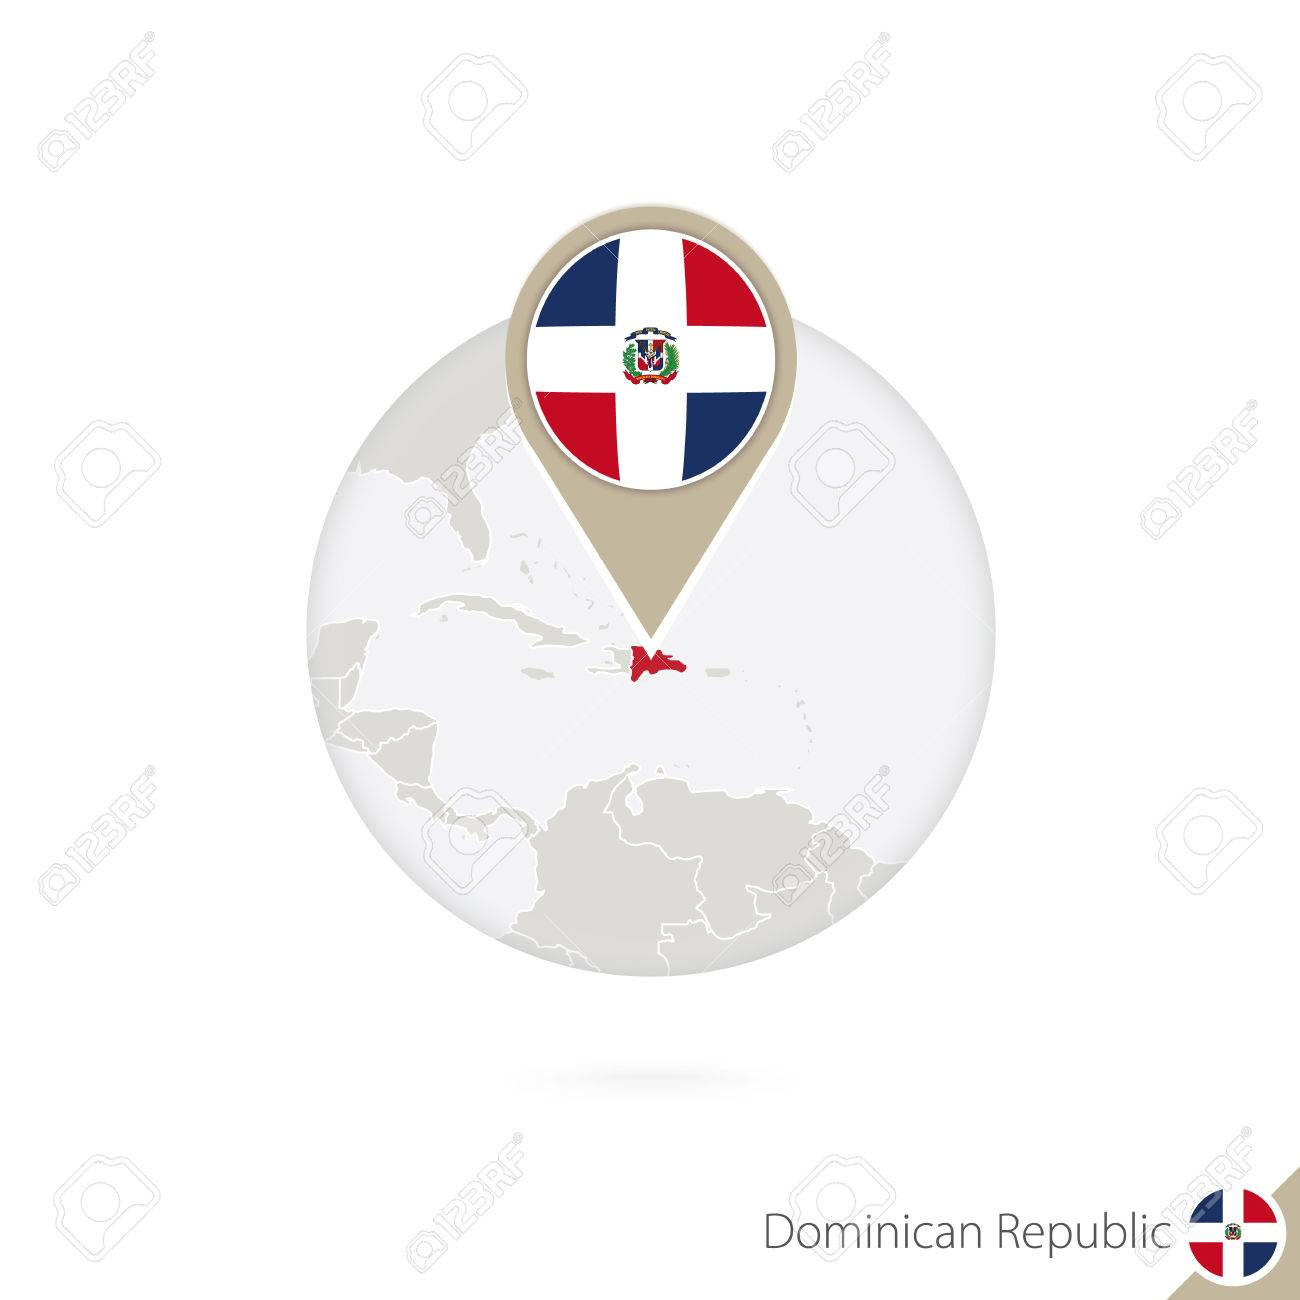 Dominican Republic Map And Flag In Circle Map Of Dominican - Dominican republic map vector